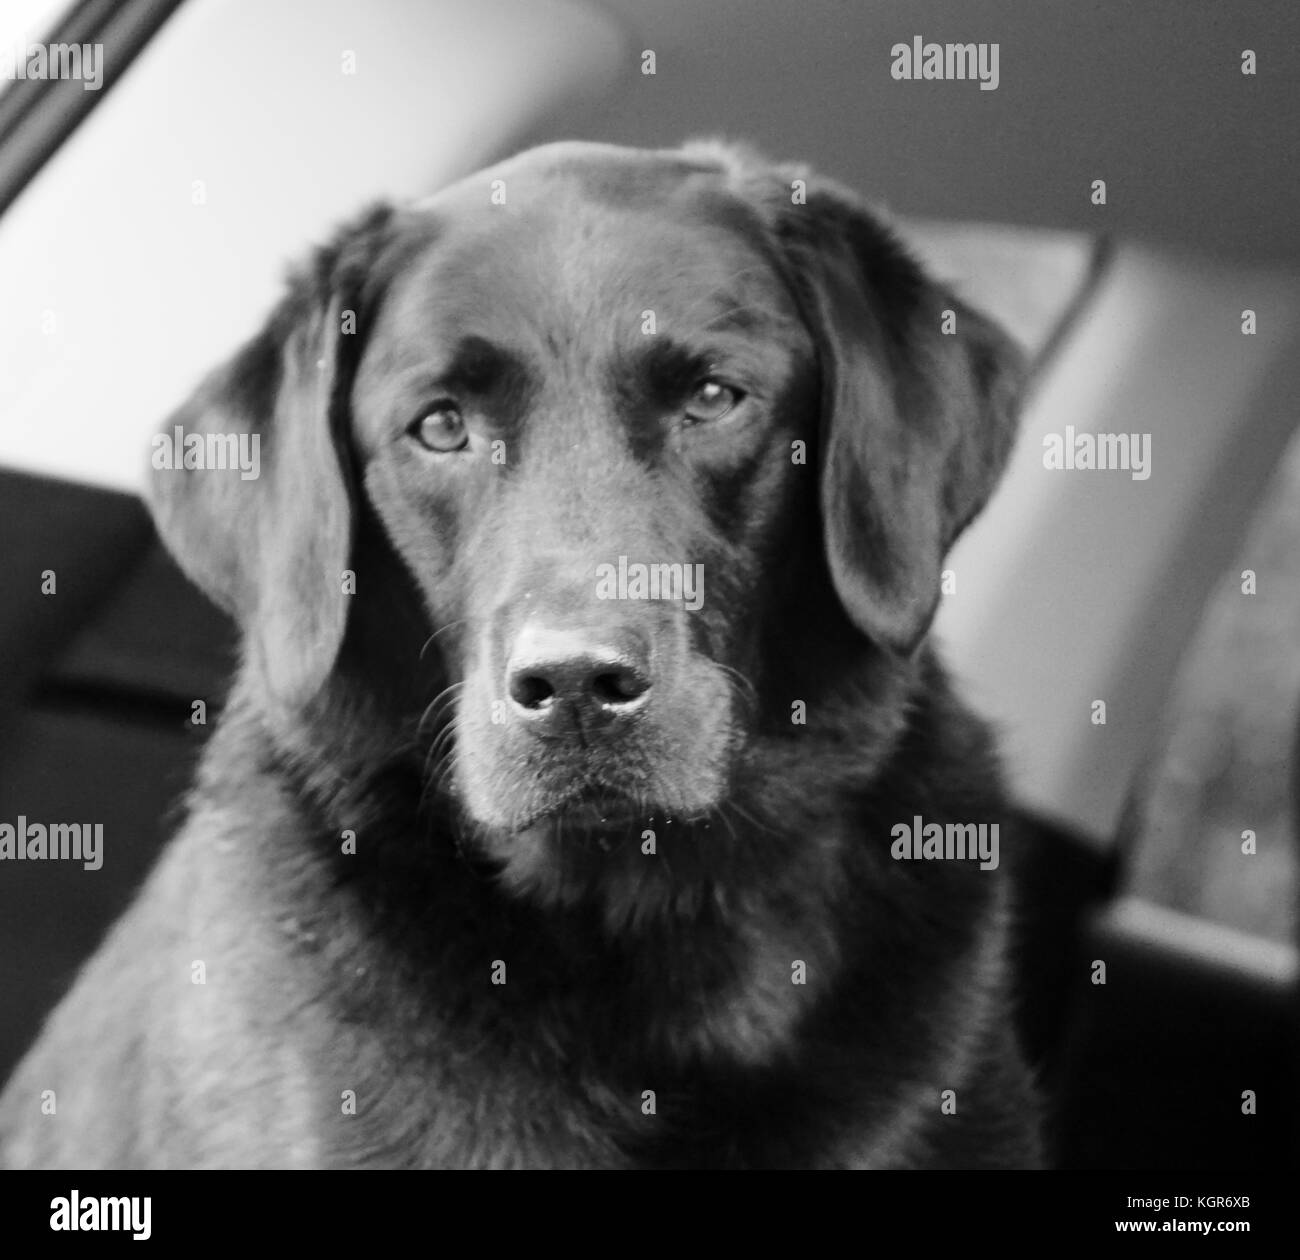 Black and white head shot of adult black Labrador - Stock Image